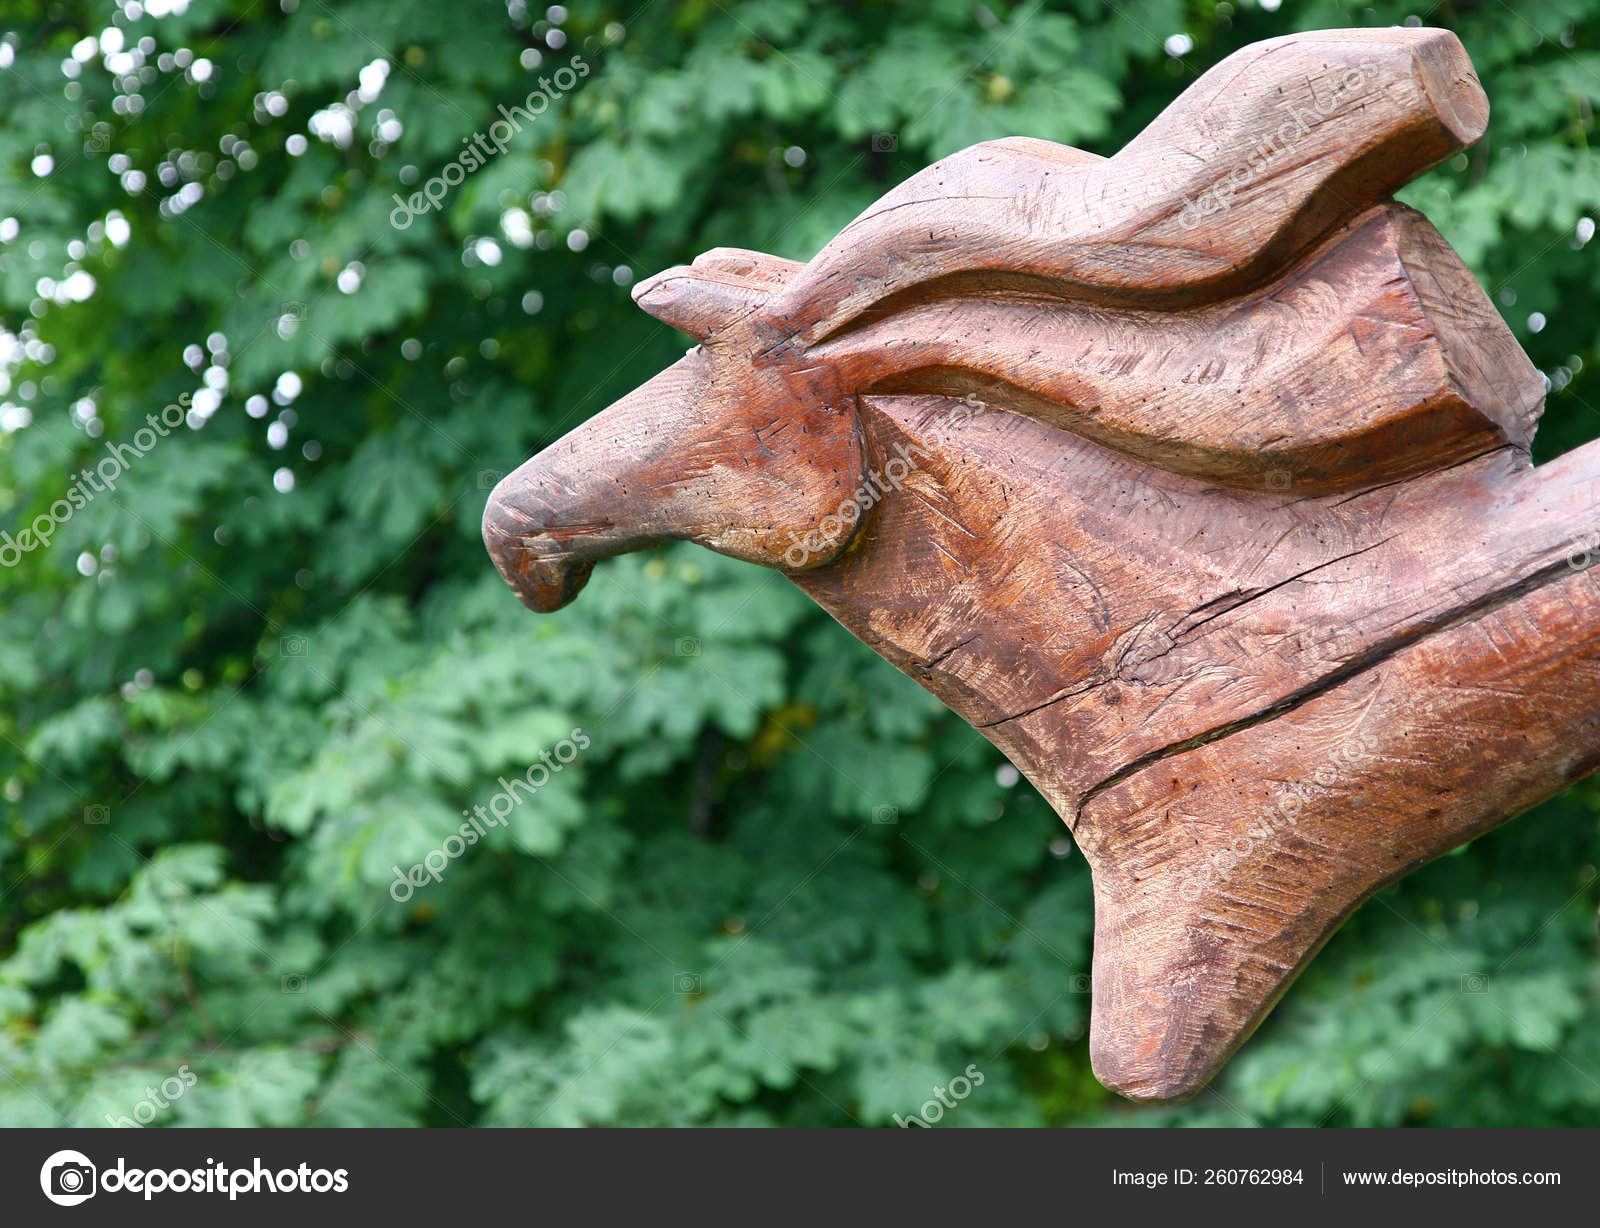 Wooden Horse Sculpture Green Foliage Background Stock Photo C Yayimages 260762984